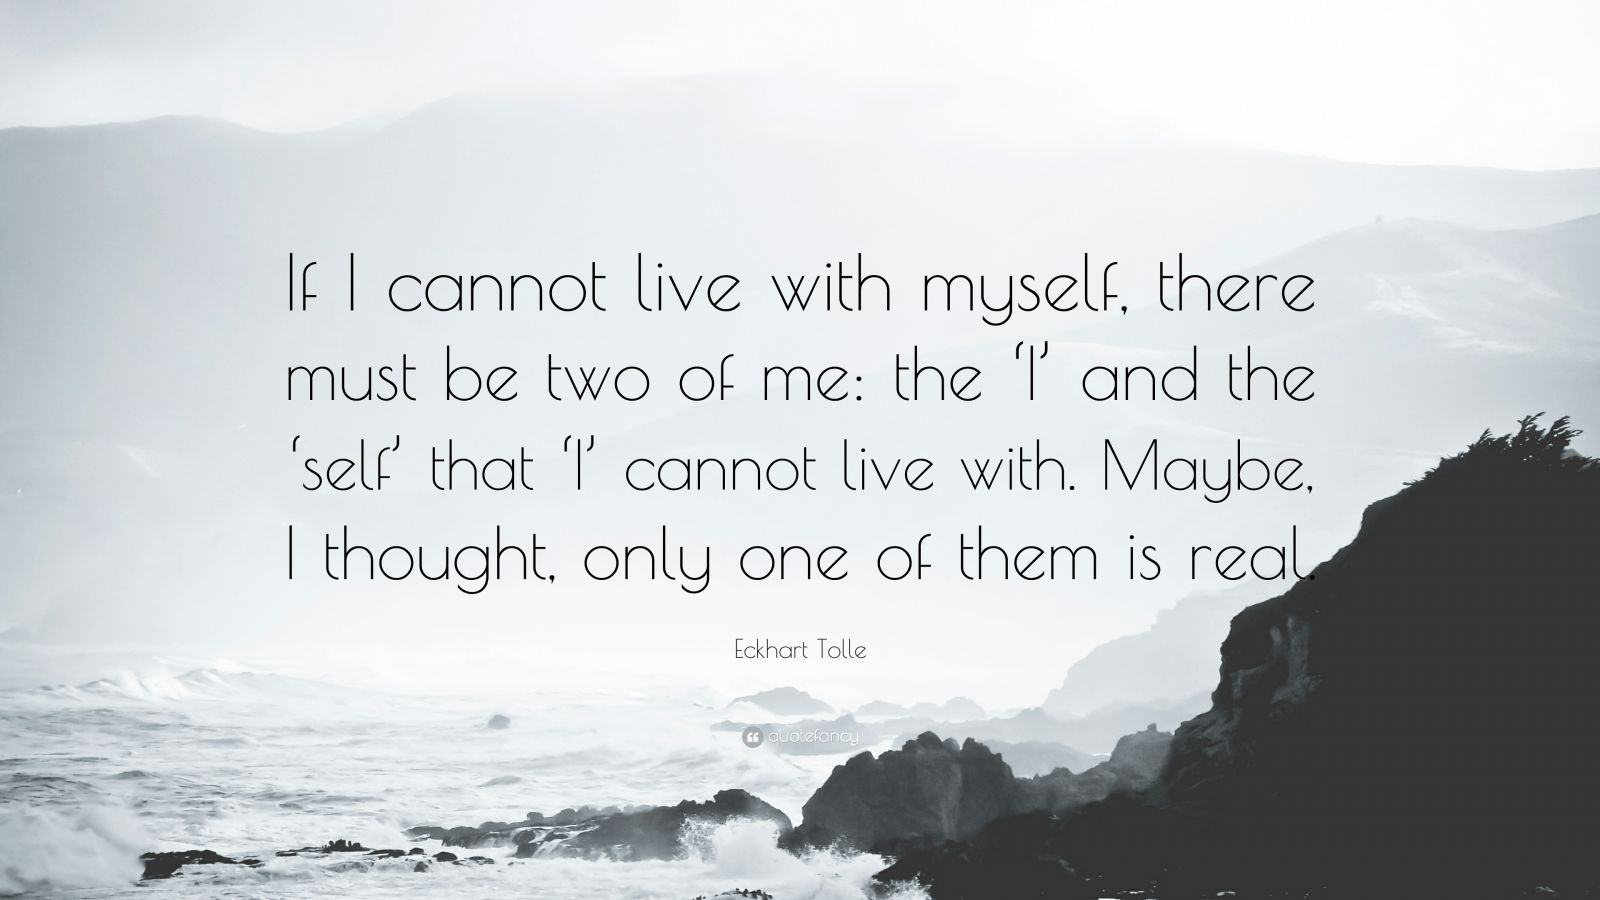 """Eckhart Tolle Quote: """"If I cannot live with myself, there must be two of me: the 'I' and the 'self' that 'I' cannot live with. Maybe, I thought, only one of them is real."""""""